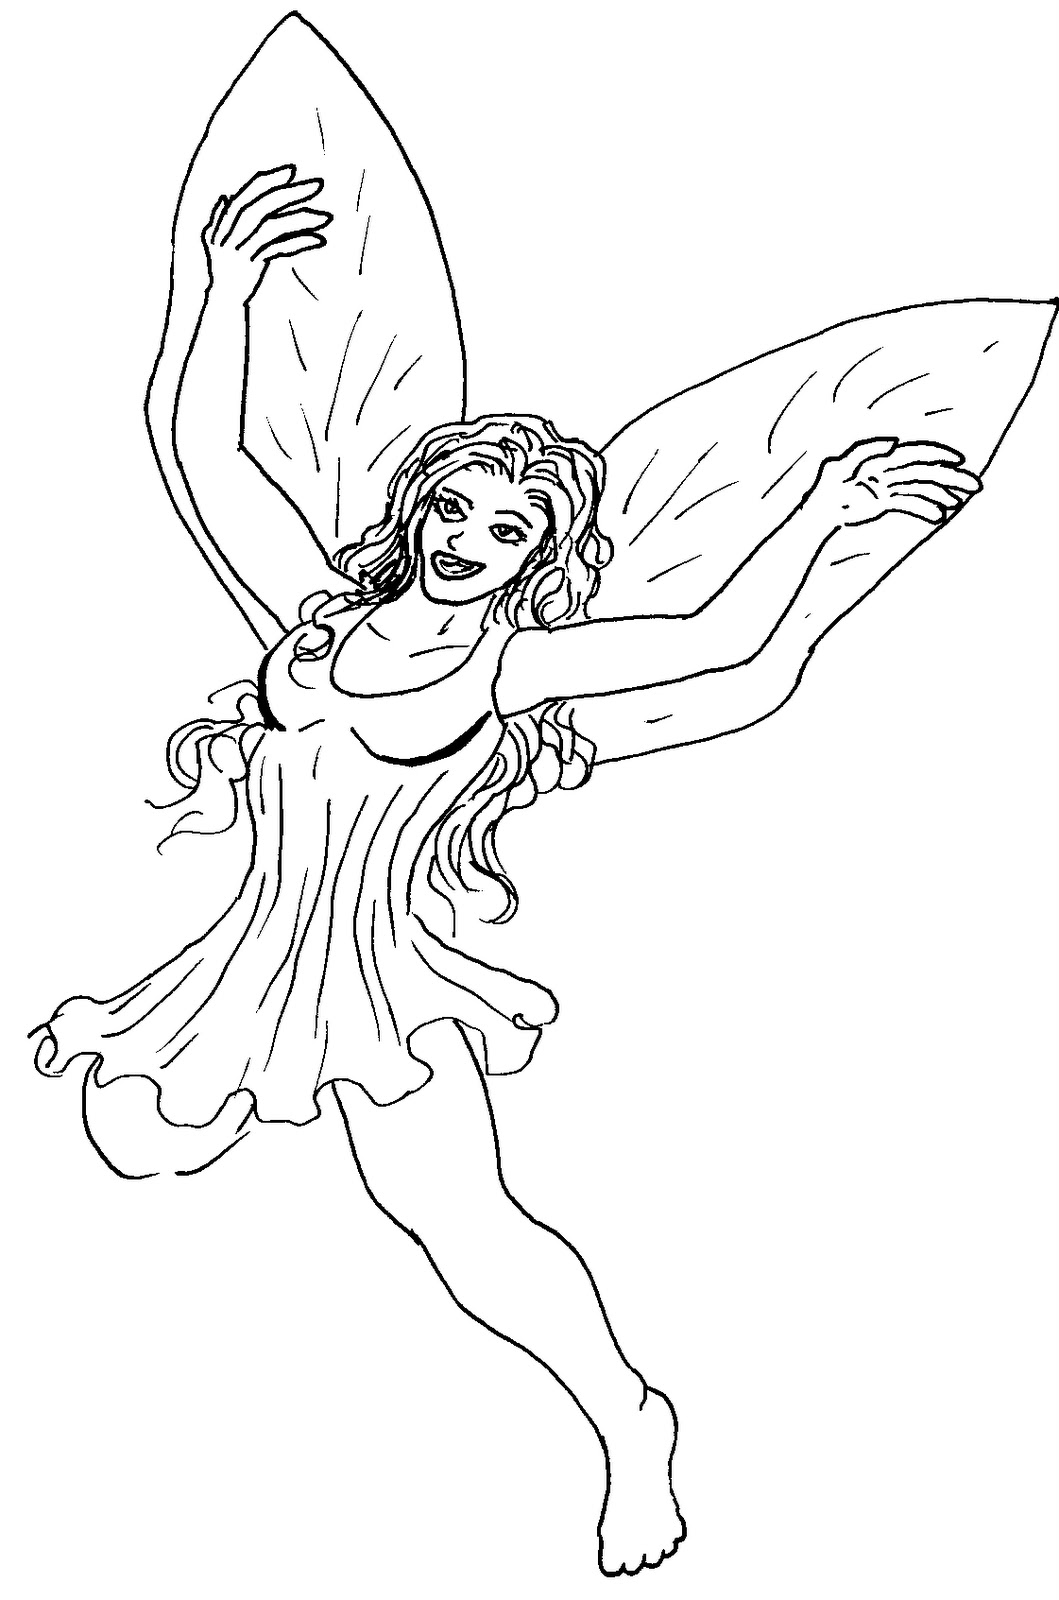 coloring pages of fairies - photo#30